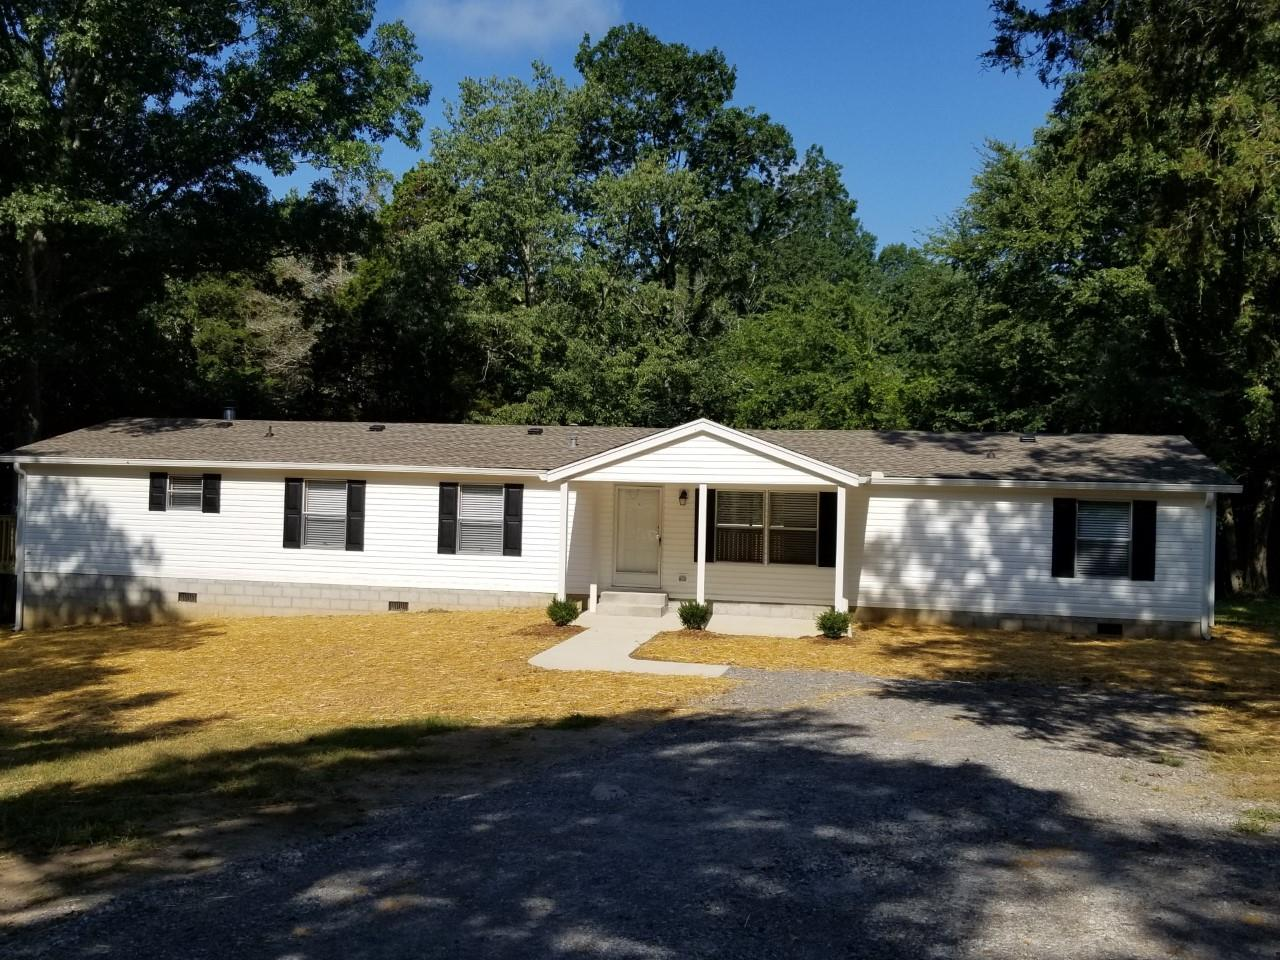 3090 S. Commerce Rd, Watertown, TN 37184 - Watertown, TN real estate listing